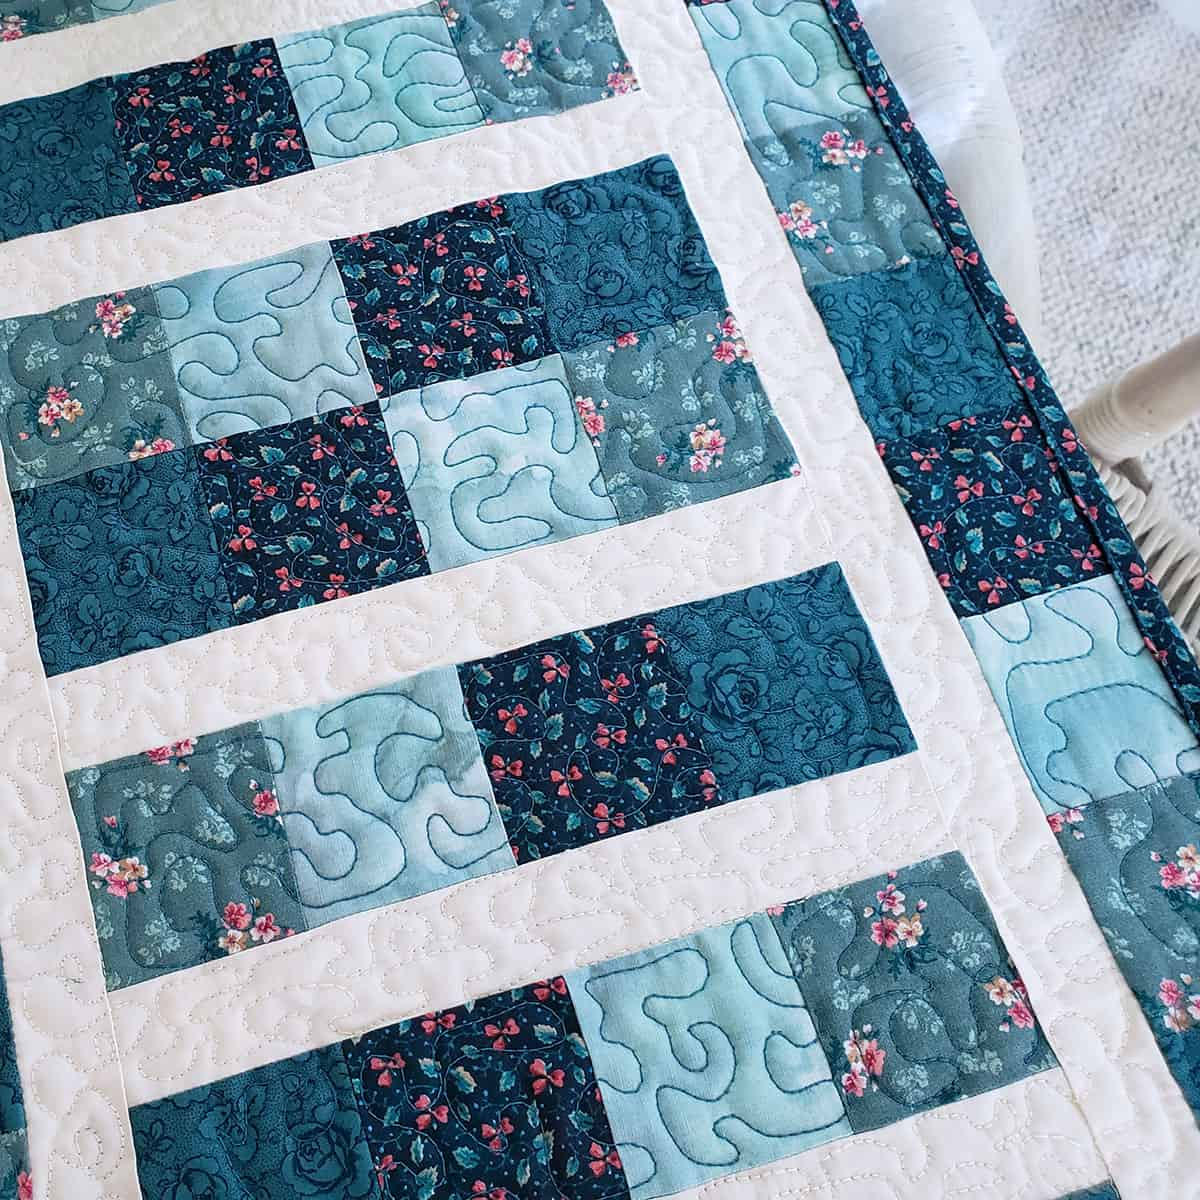 Closeup of the quilting on the table runner